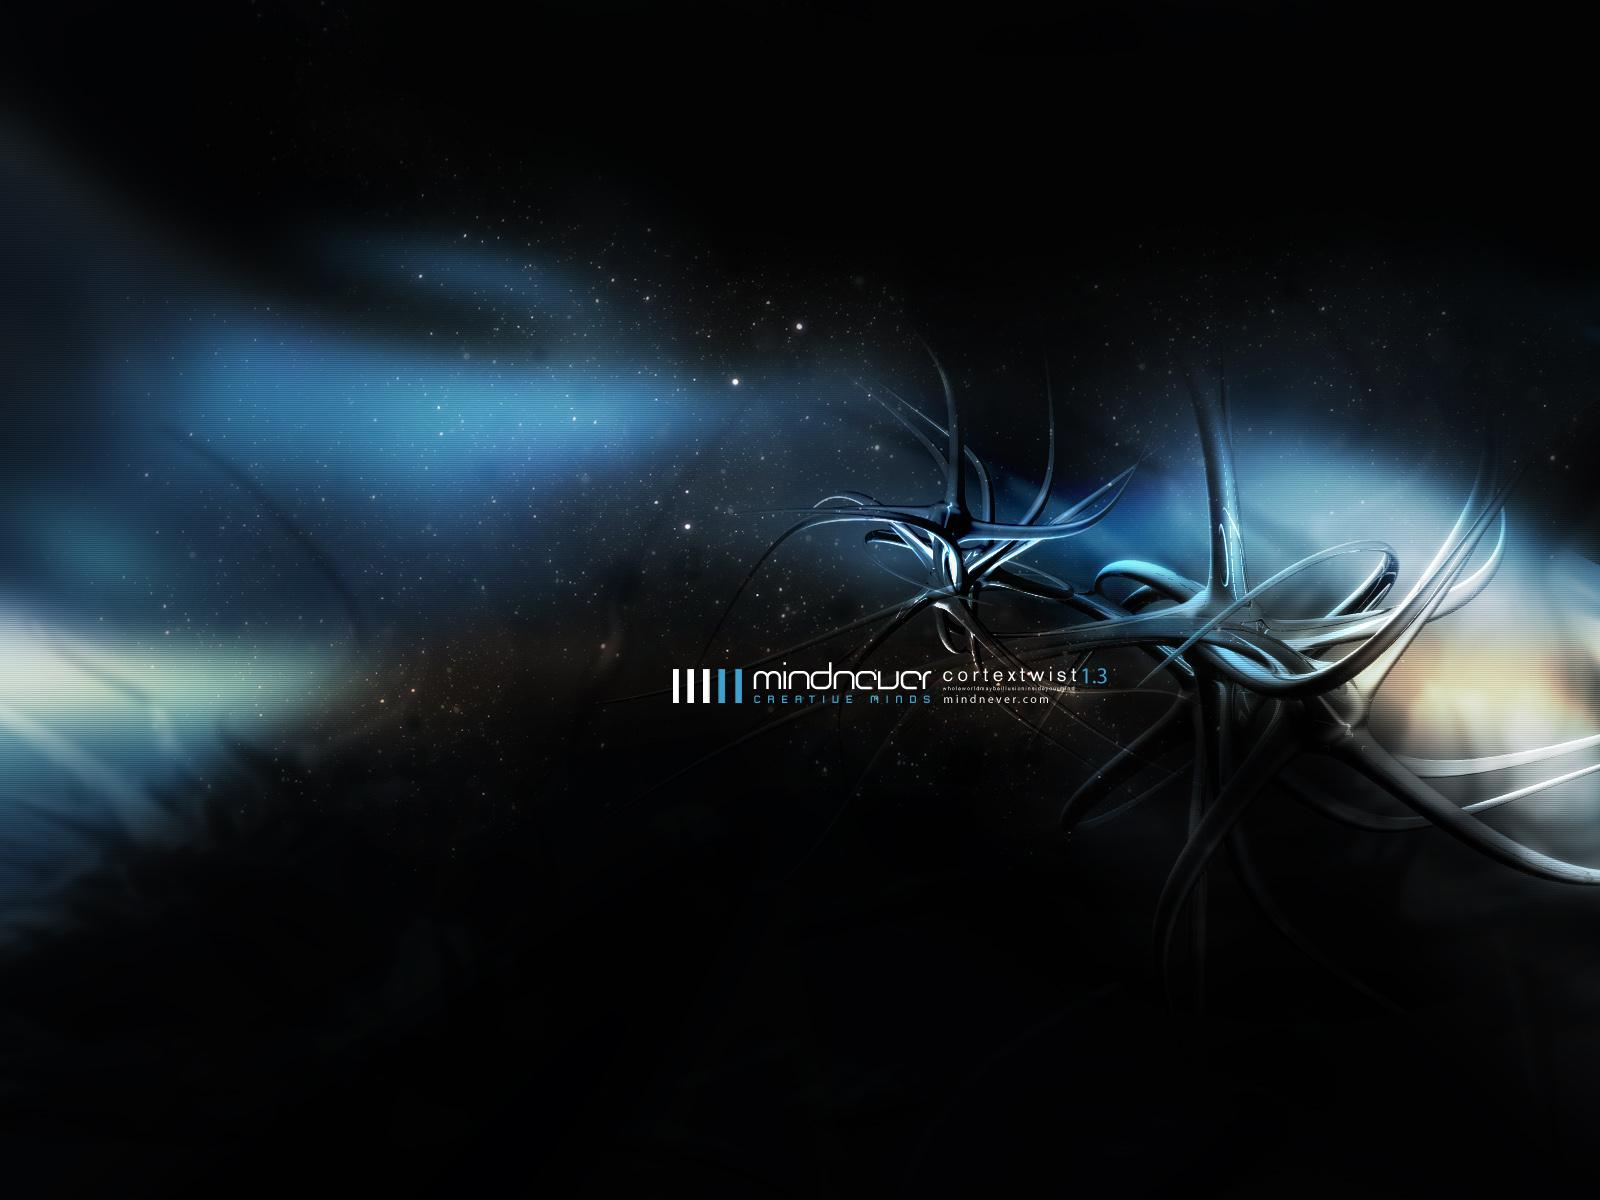 Abstract Desktop Free Wallpaper Pc Games Wallpaper